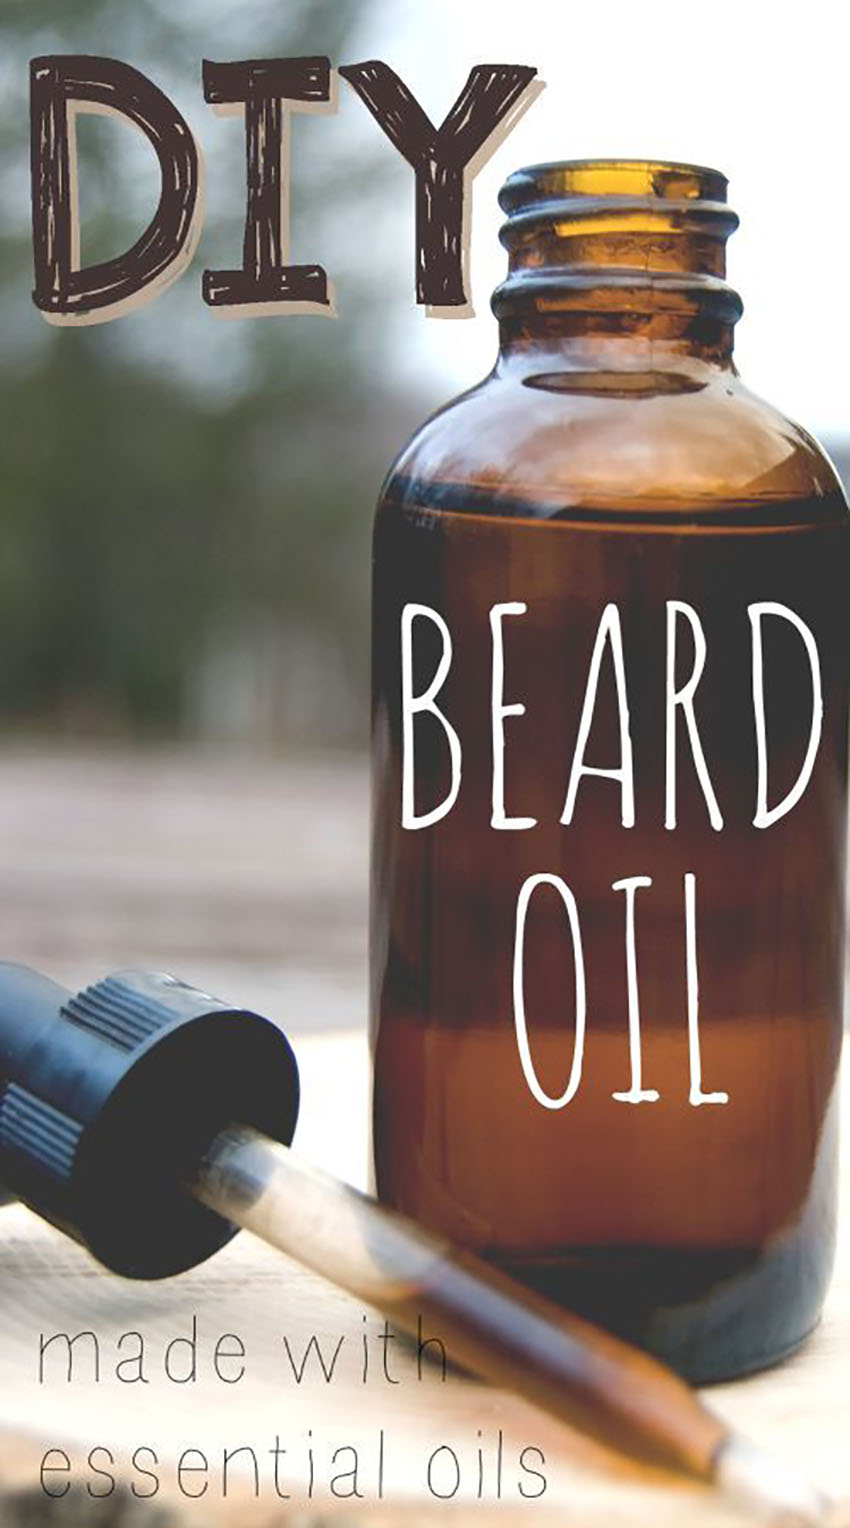 Beard Oil - DIY Gifts Men Want